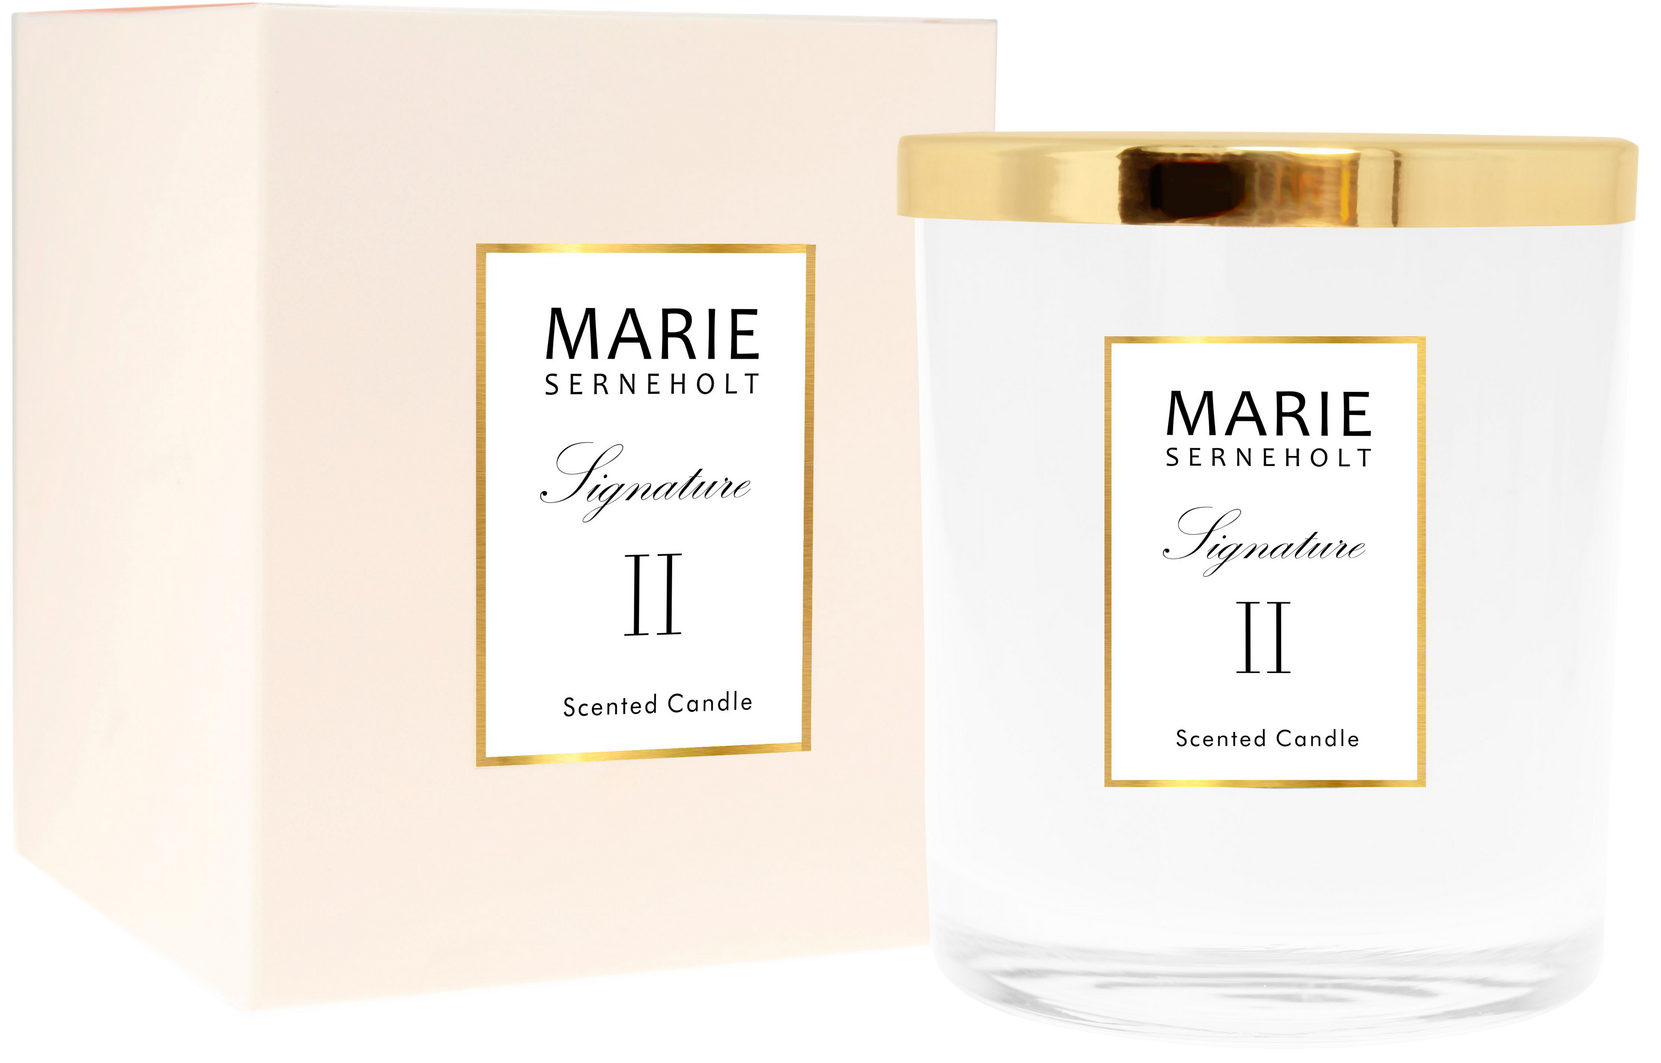 Signature II Scented Candle 300 g